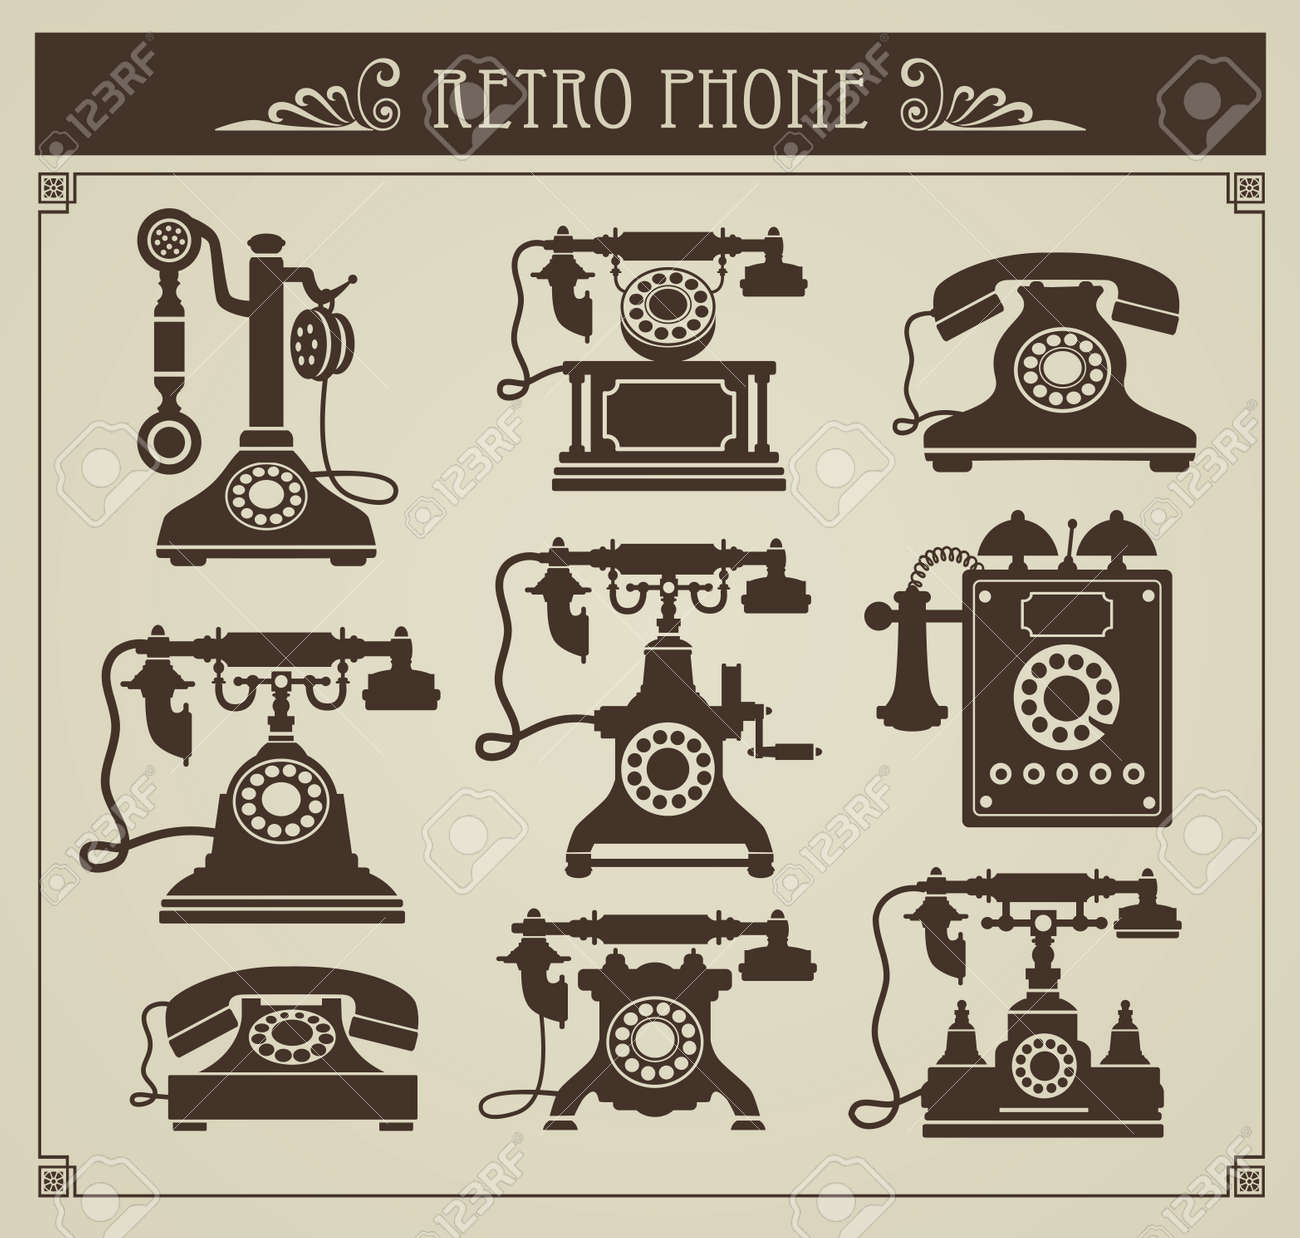 The set of vintage phones on a gray background - 13180984